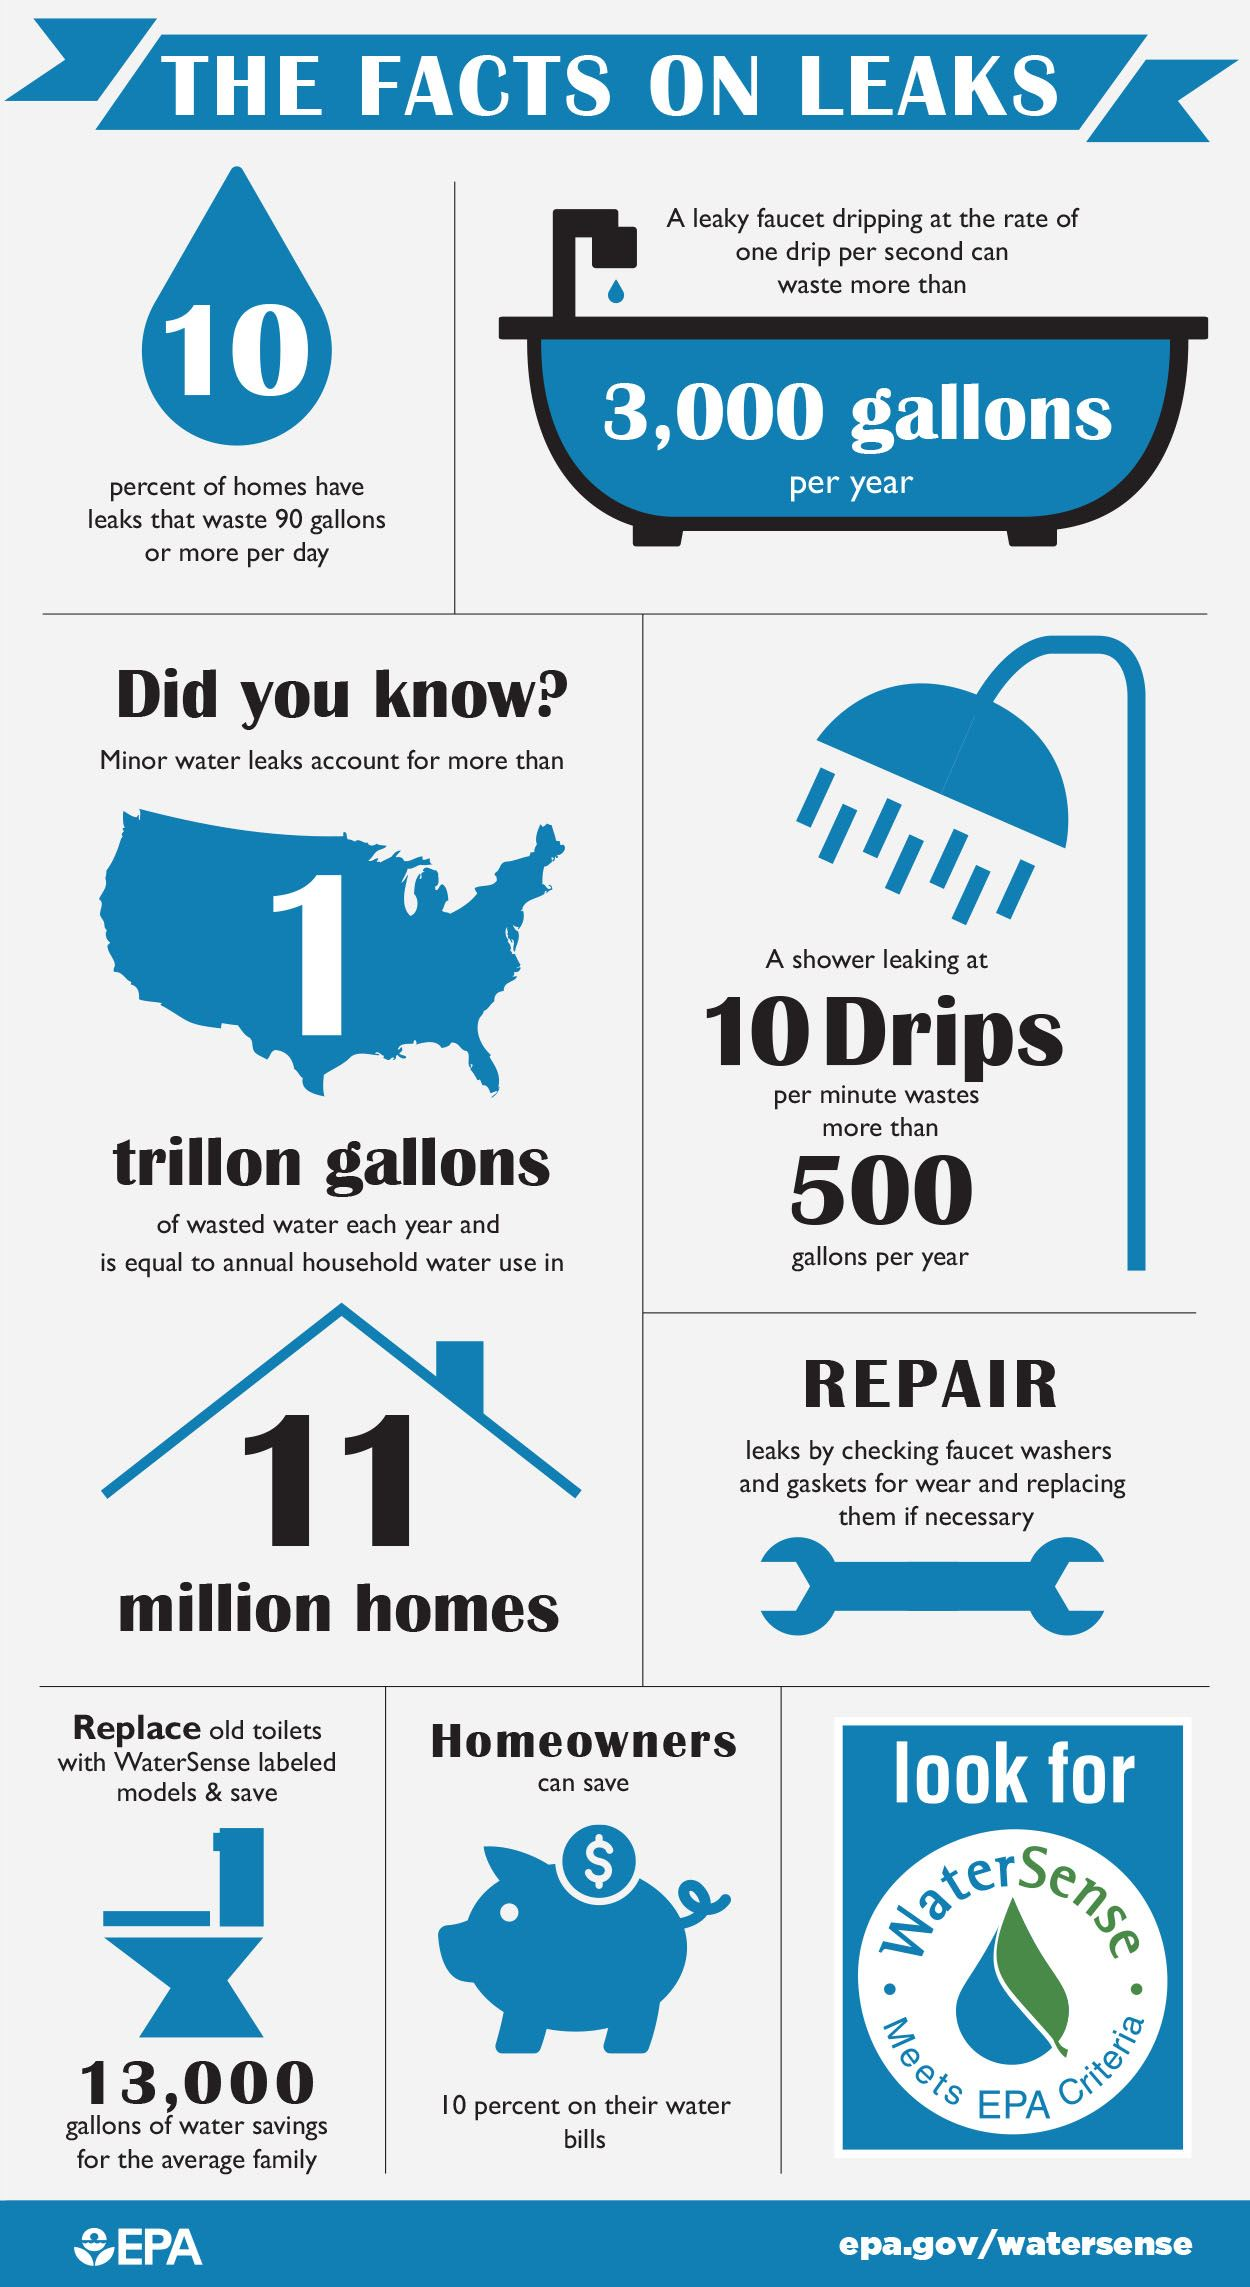 Fix a Leak Facts